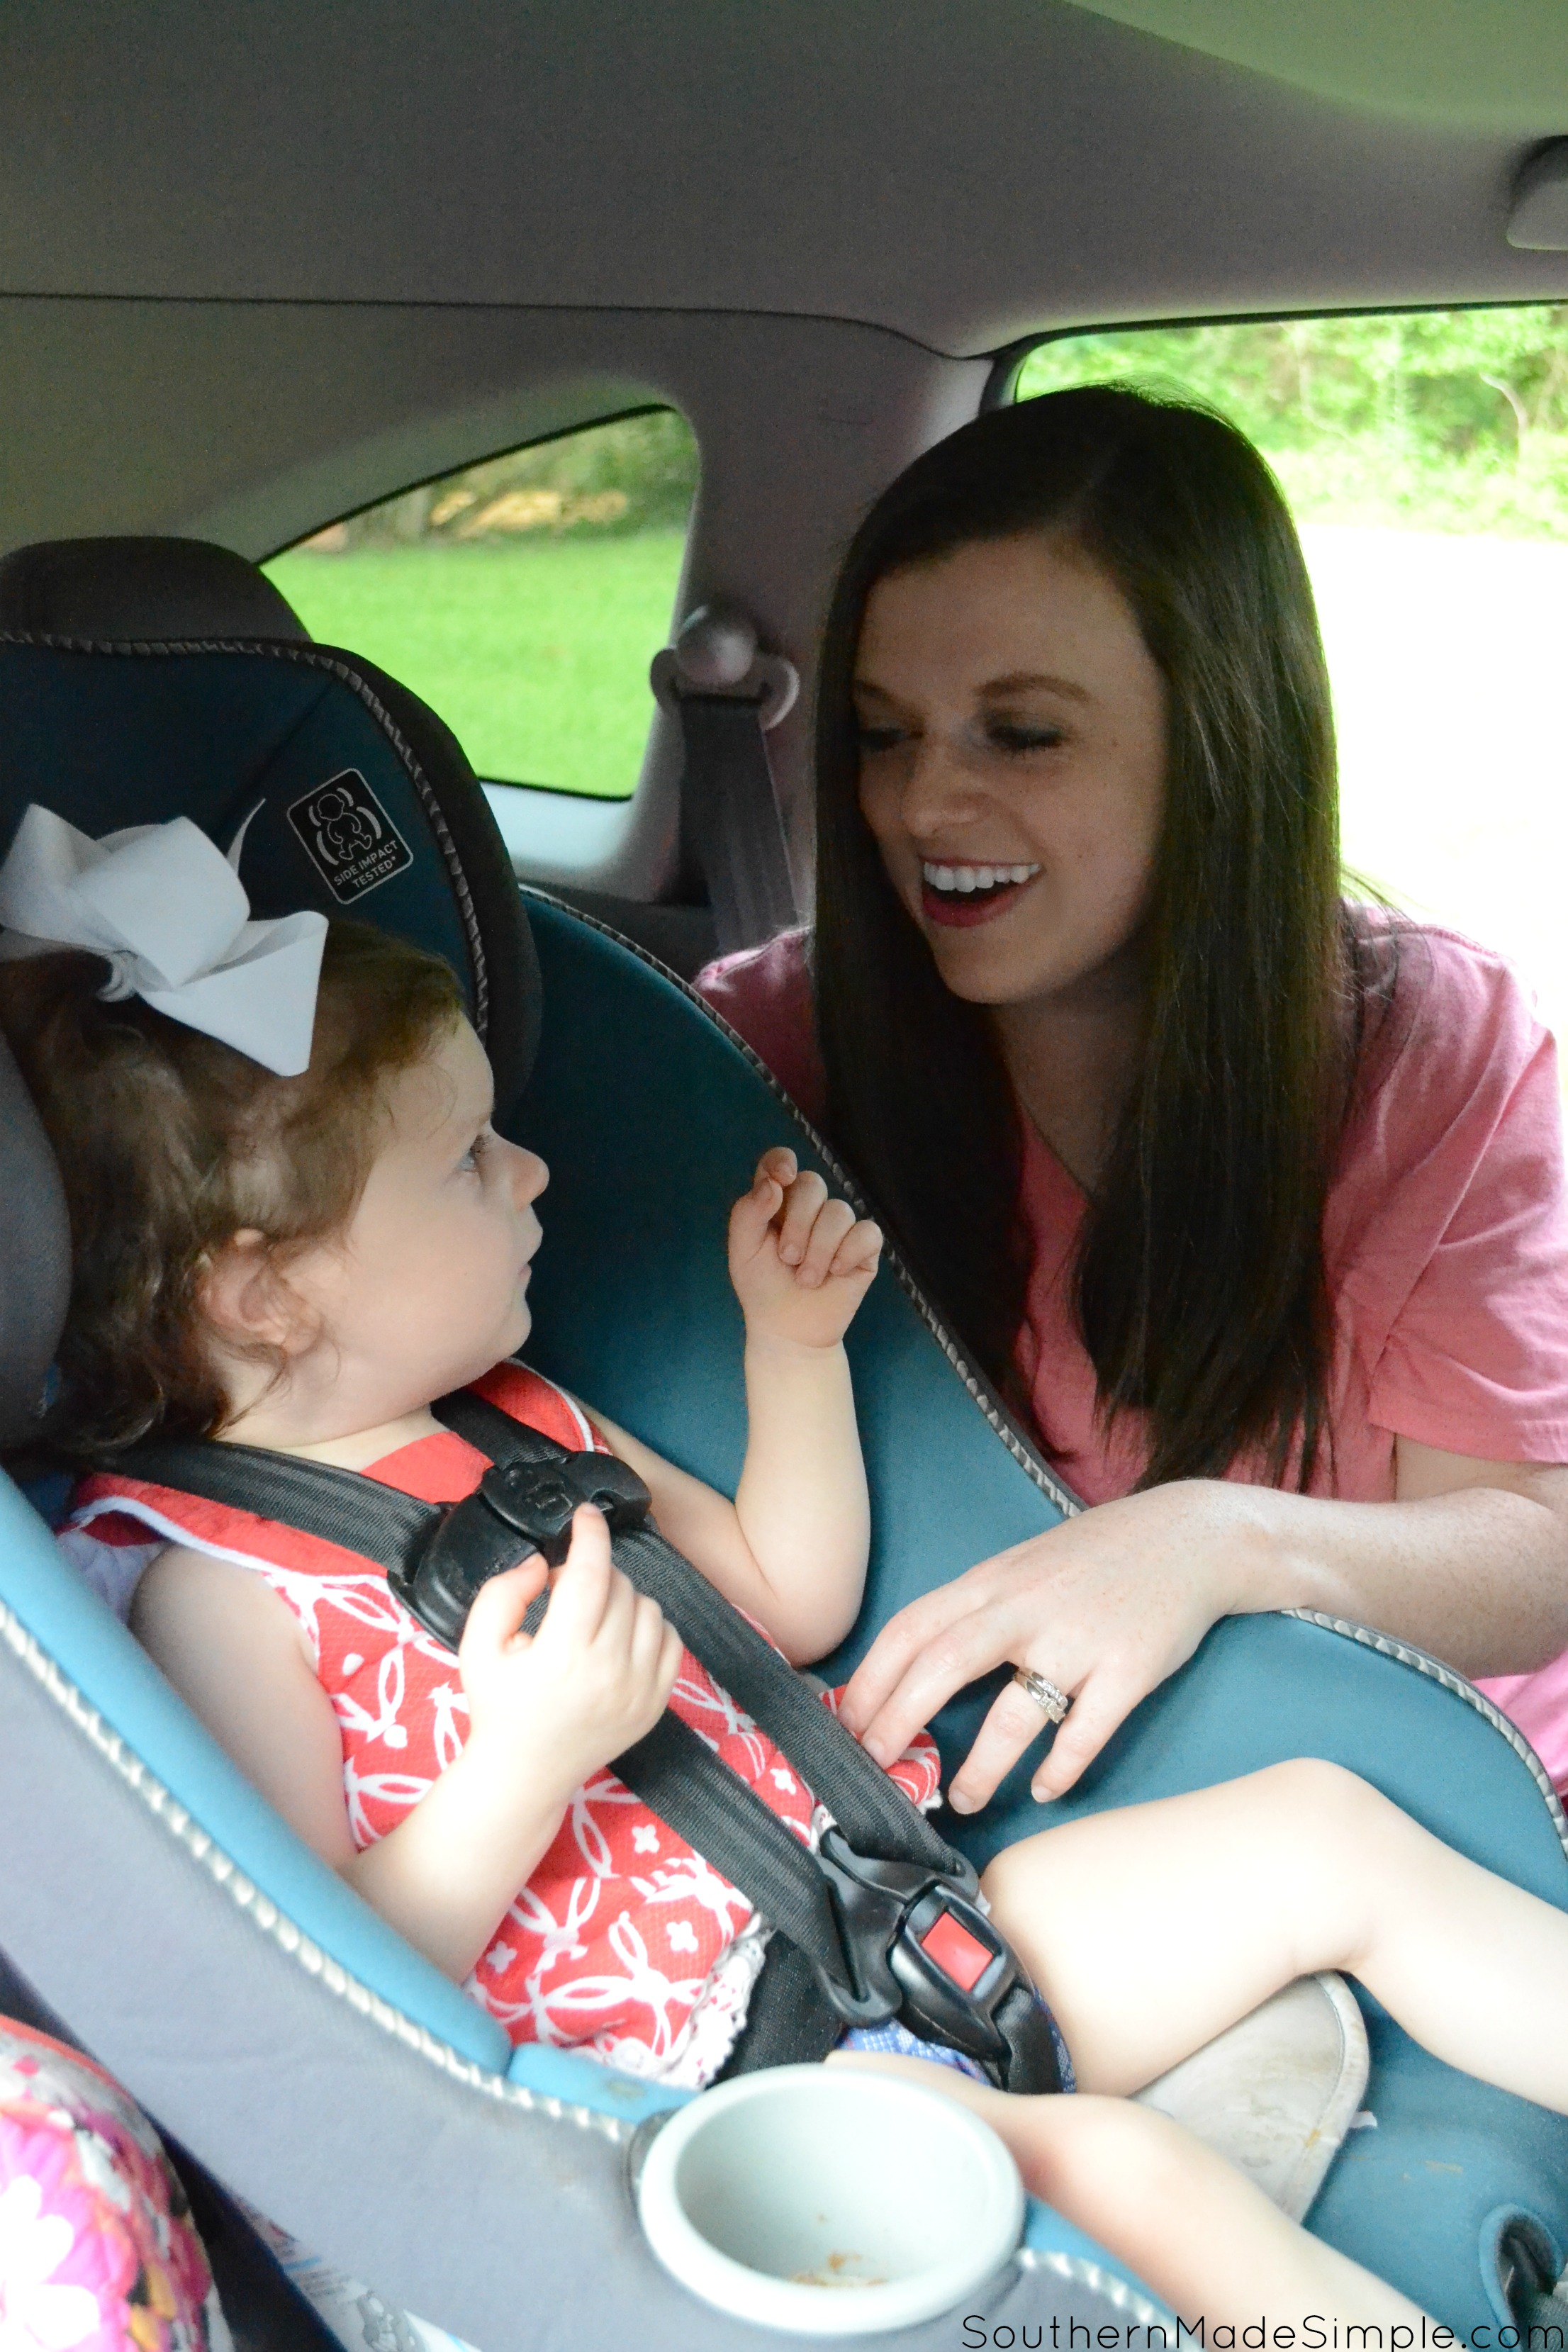 Baby on Board? Here's what you need to know about heatstroke prevention #CheckforBaby #ad #IC